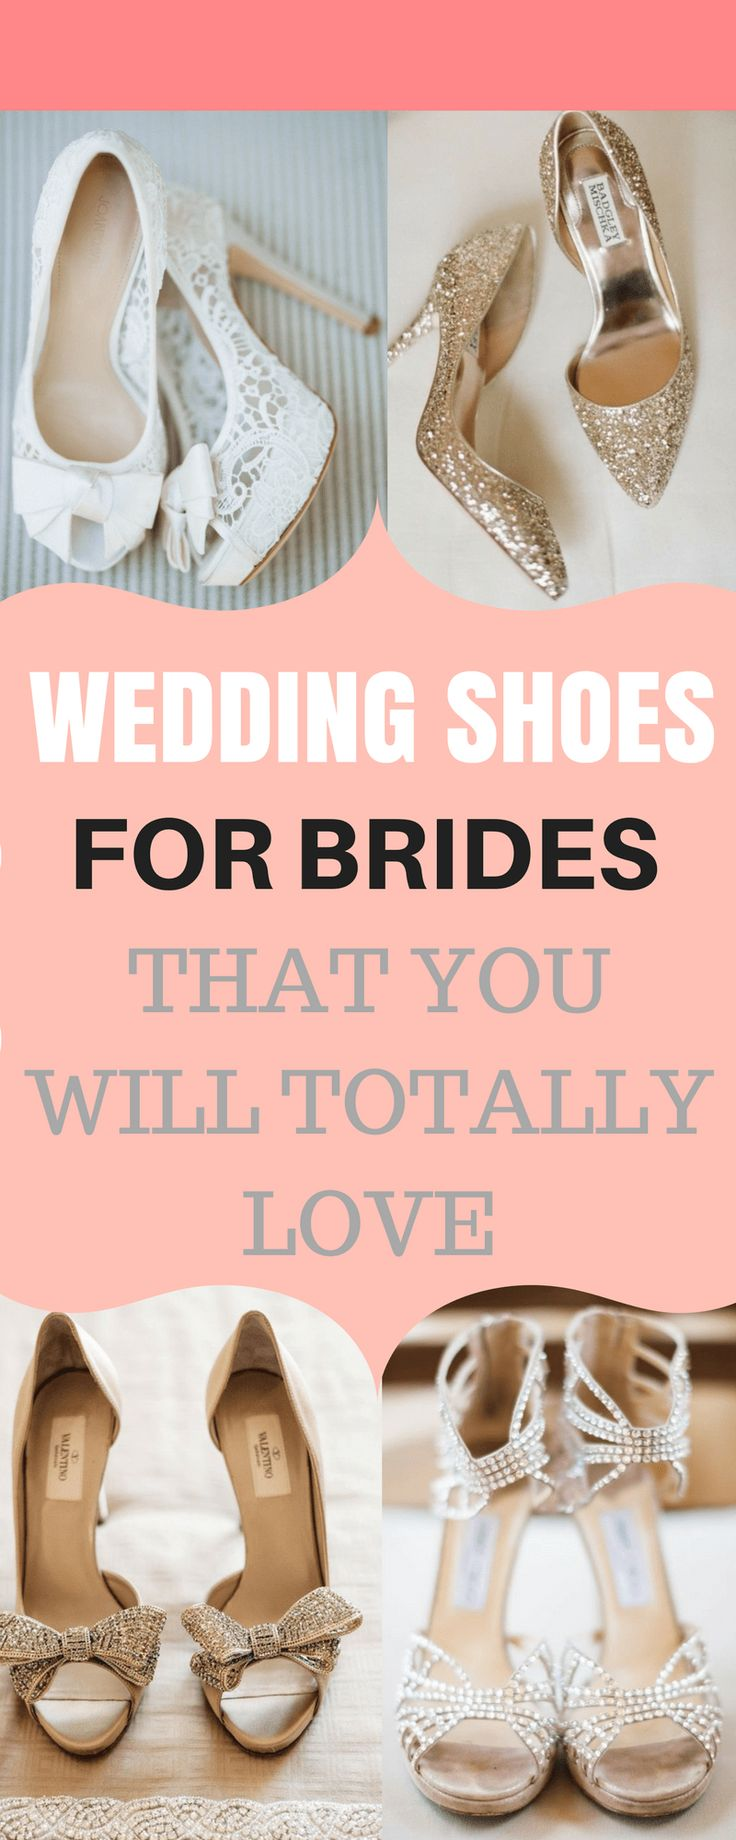 Wedding shoes for brides. Comfortable wedding shoes for brides. Simple wedding shoes for brides, The best bridal shoes for weddings. Finding the perfect wedding shoes for your big day! Jimmy shoo. Wedding shoe ideas. Lace wedding shoes. #Weddingshoes #bridalshoes